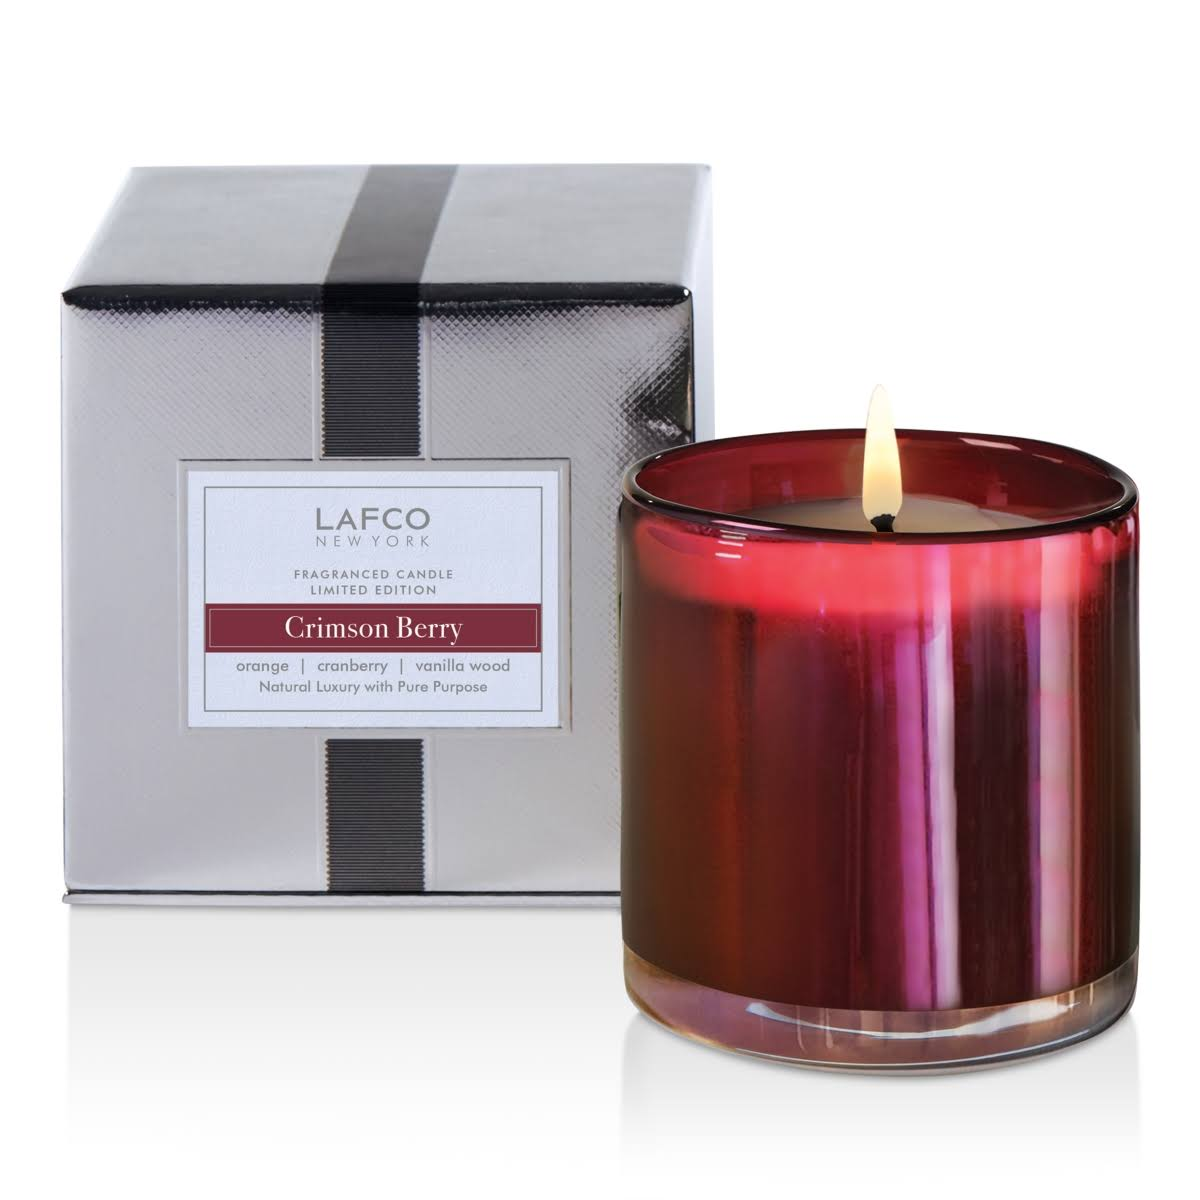 Lafco Limited Edition Signature Candle - Crimson Berry